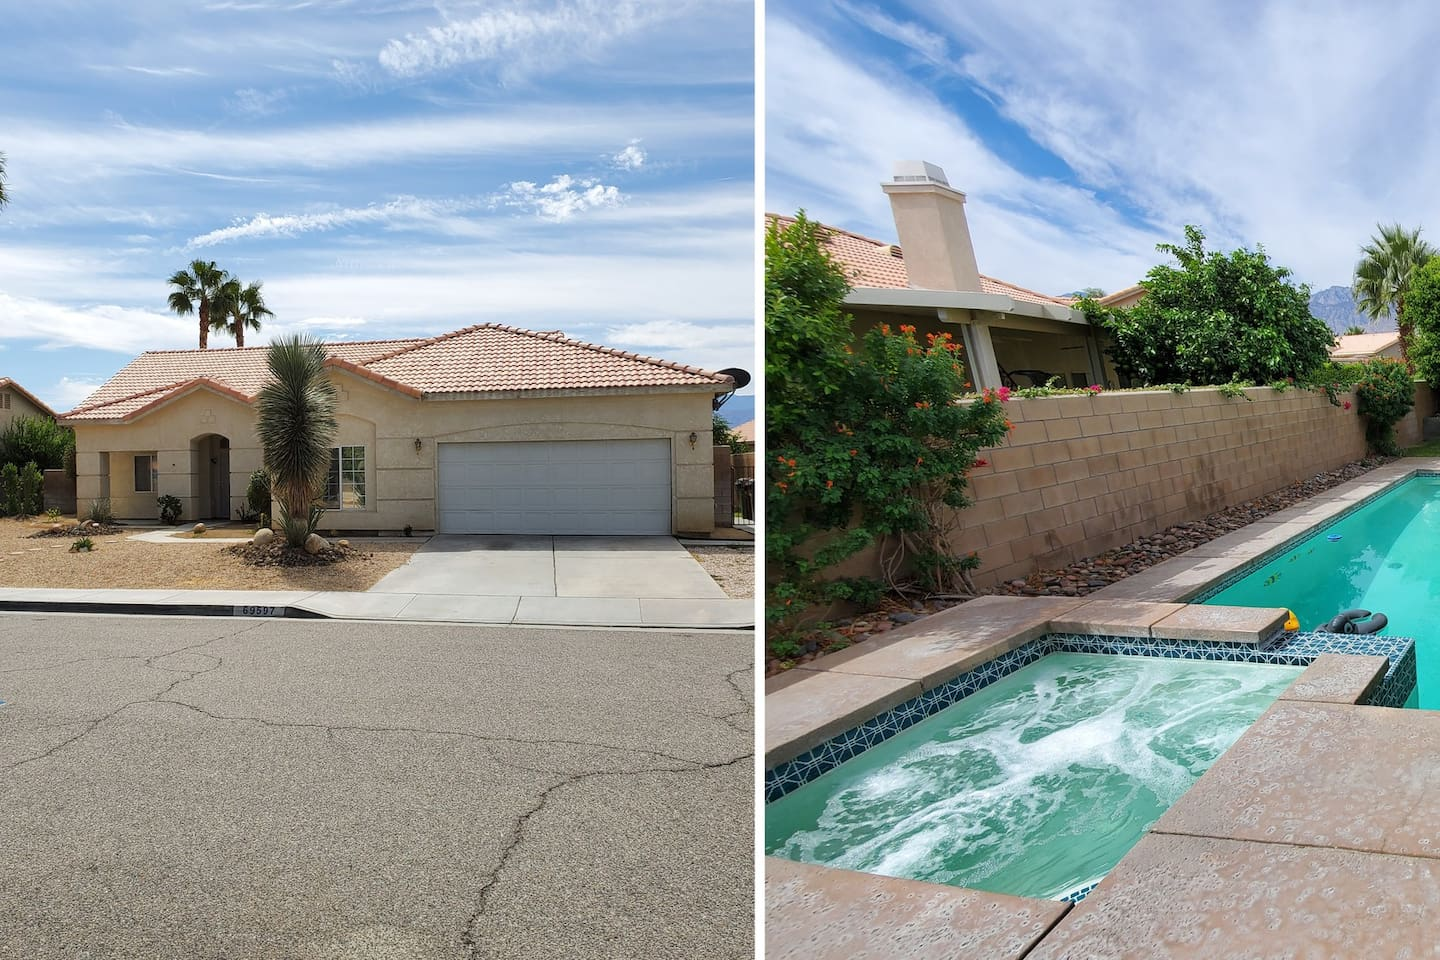 Single family residence, booking complete with private full backyard and garage access.